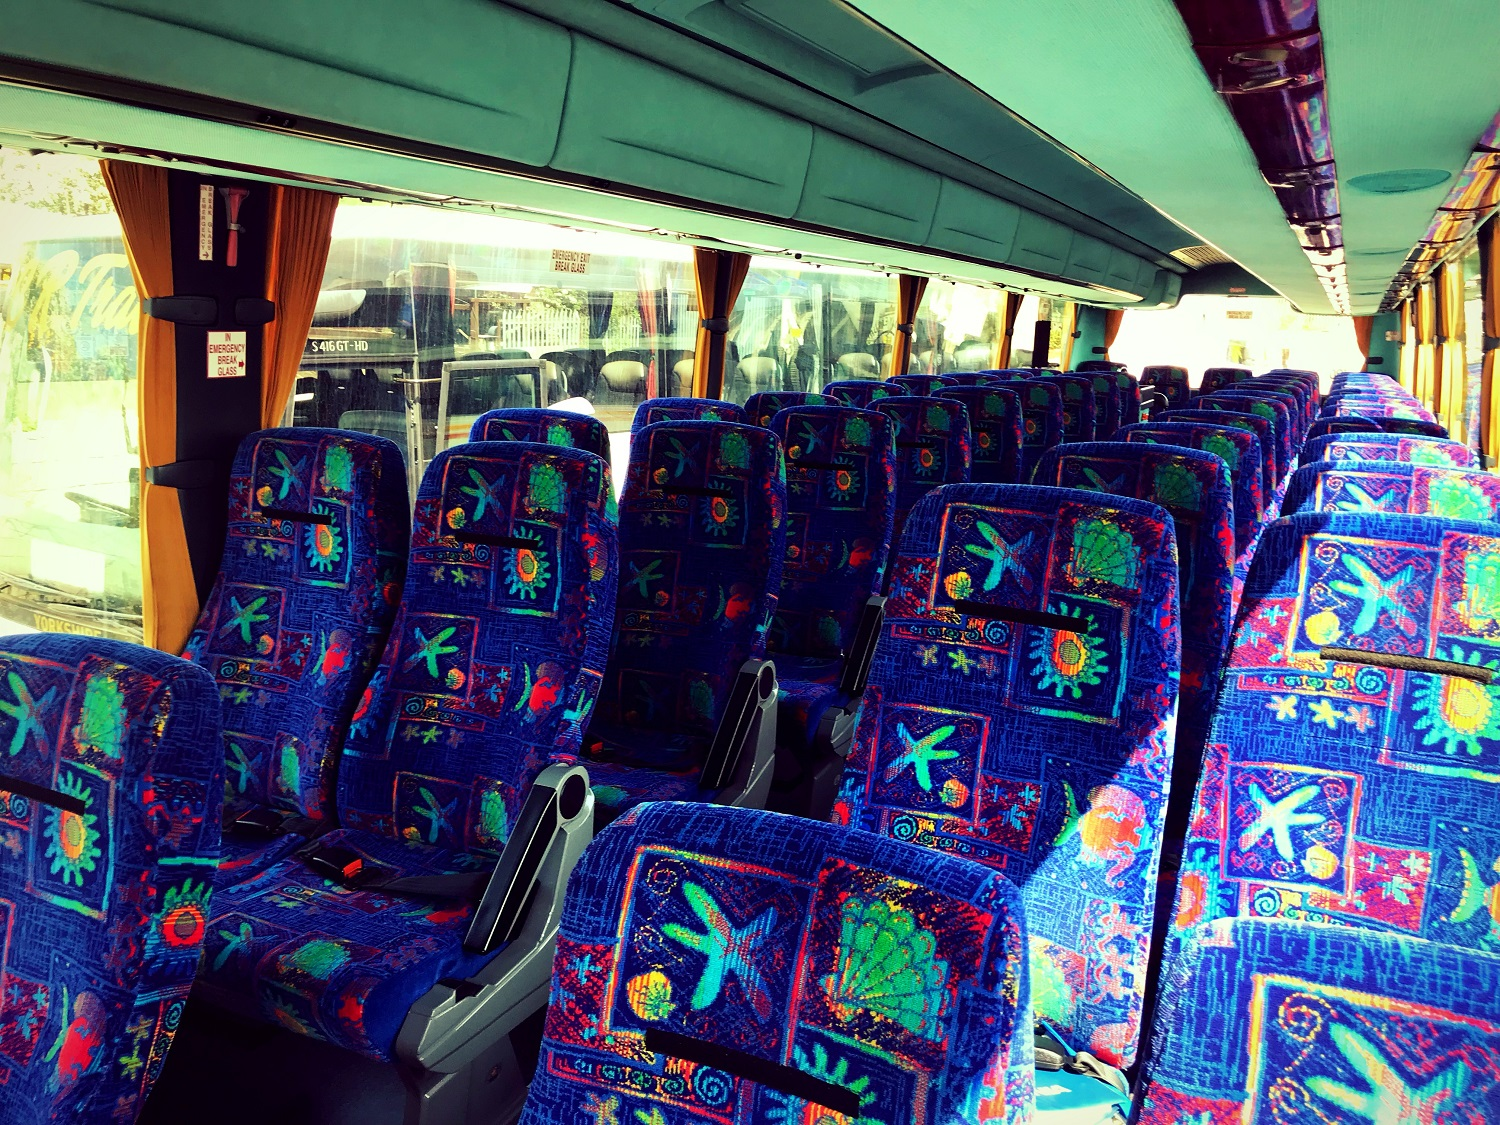 A view of the seats in Advanced Travel's 49 seater Scania Irizar coach, which is available for coach hire in Doncaster. The seats are reclinable and have lap belts. They are covered in a blue fabric with a seashell pattern. There are two rows of double seats with an aisle down the middle. There are two rows of overhead storage compartments above each row of seats.